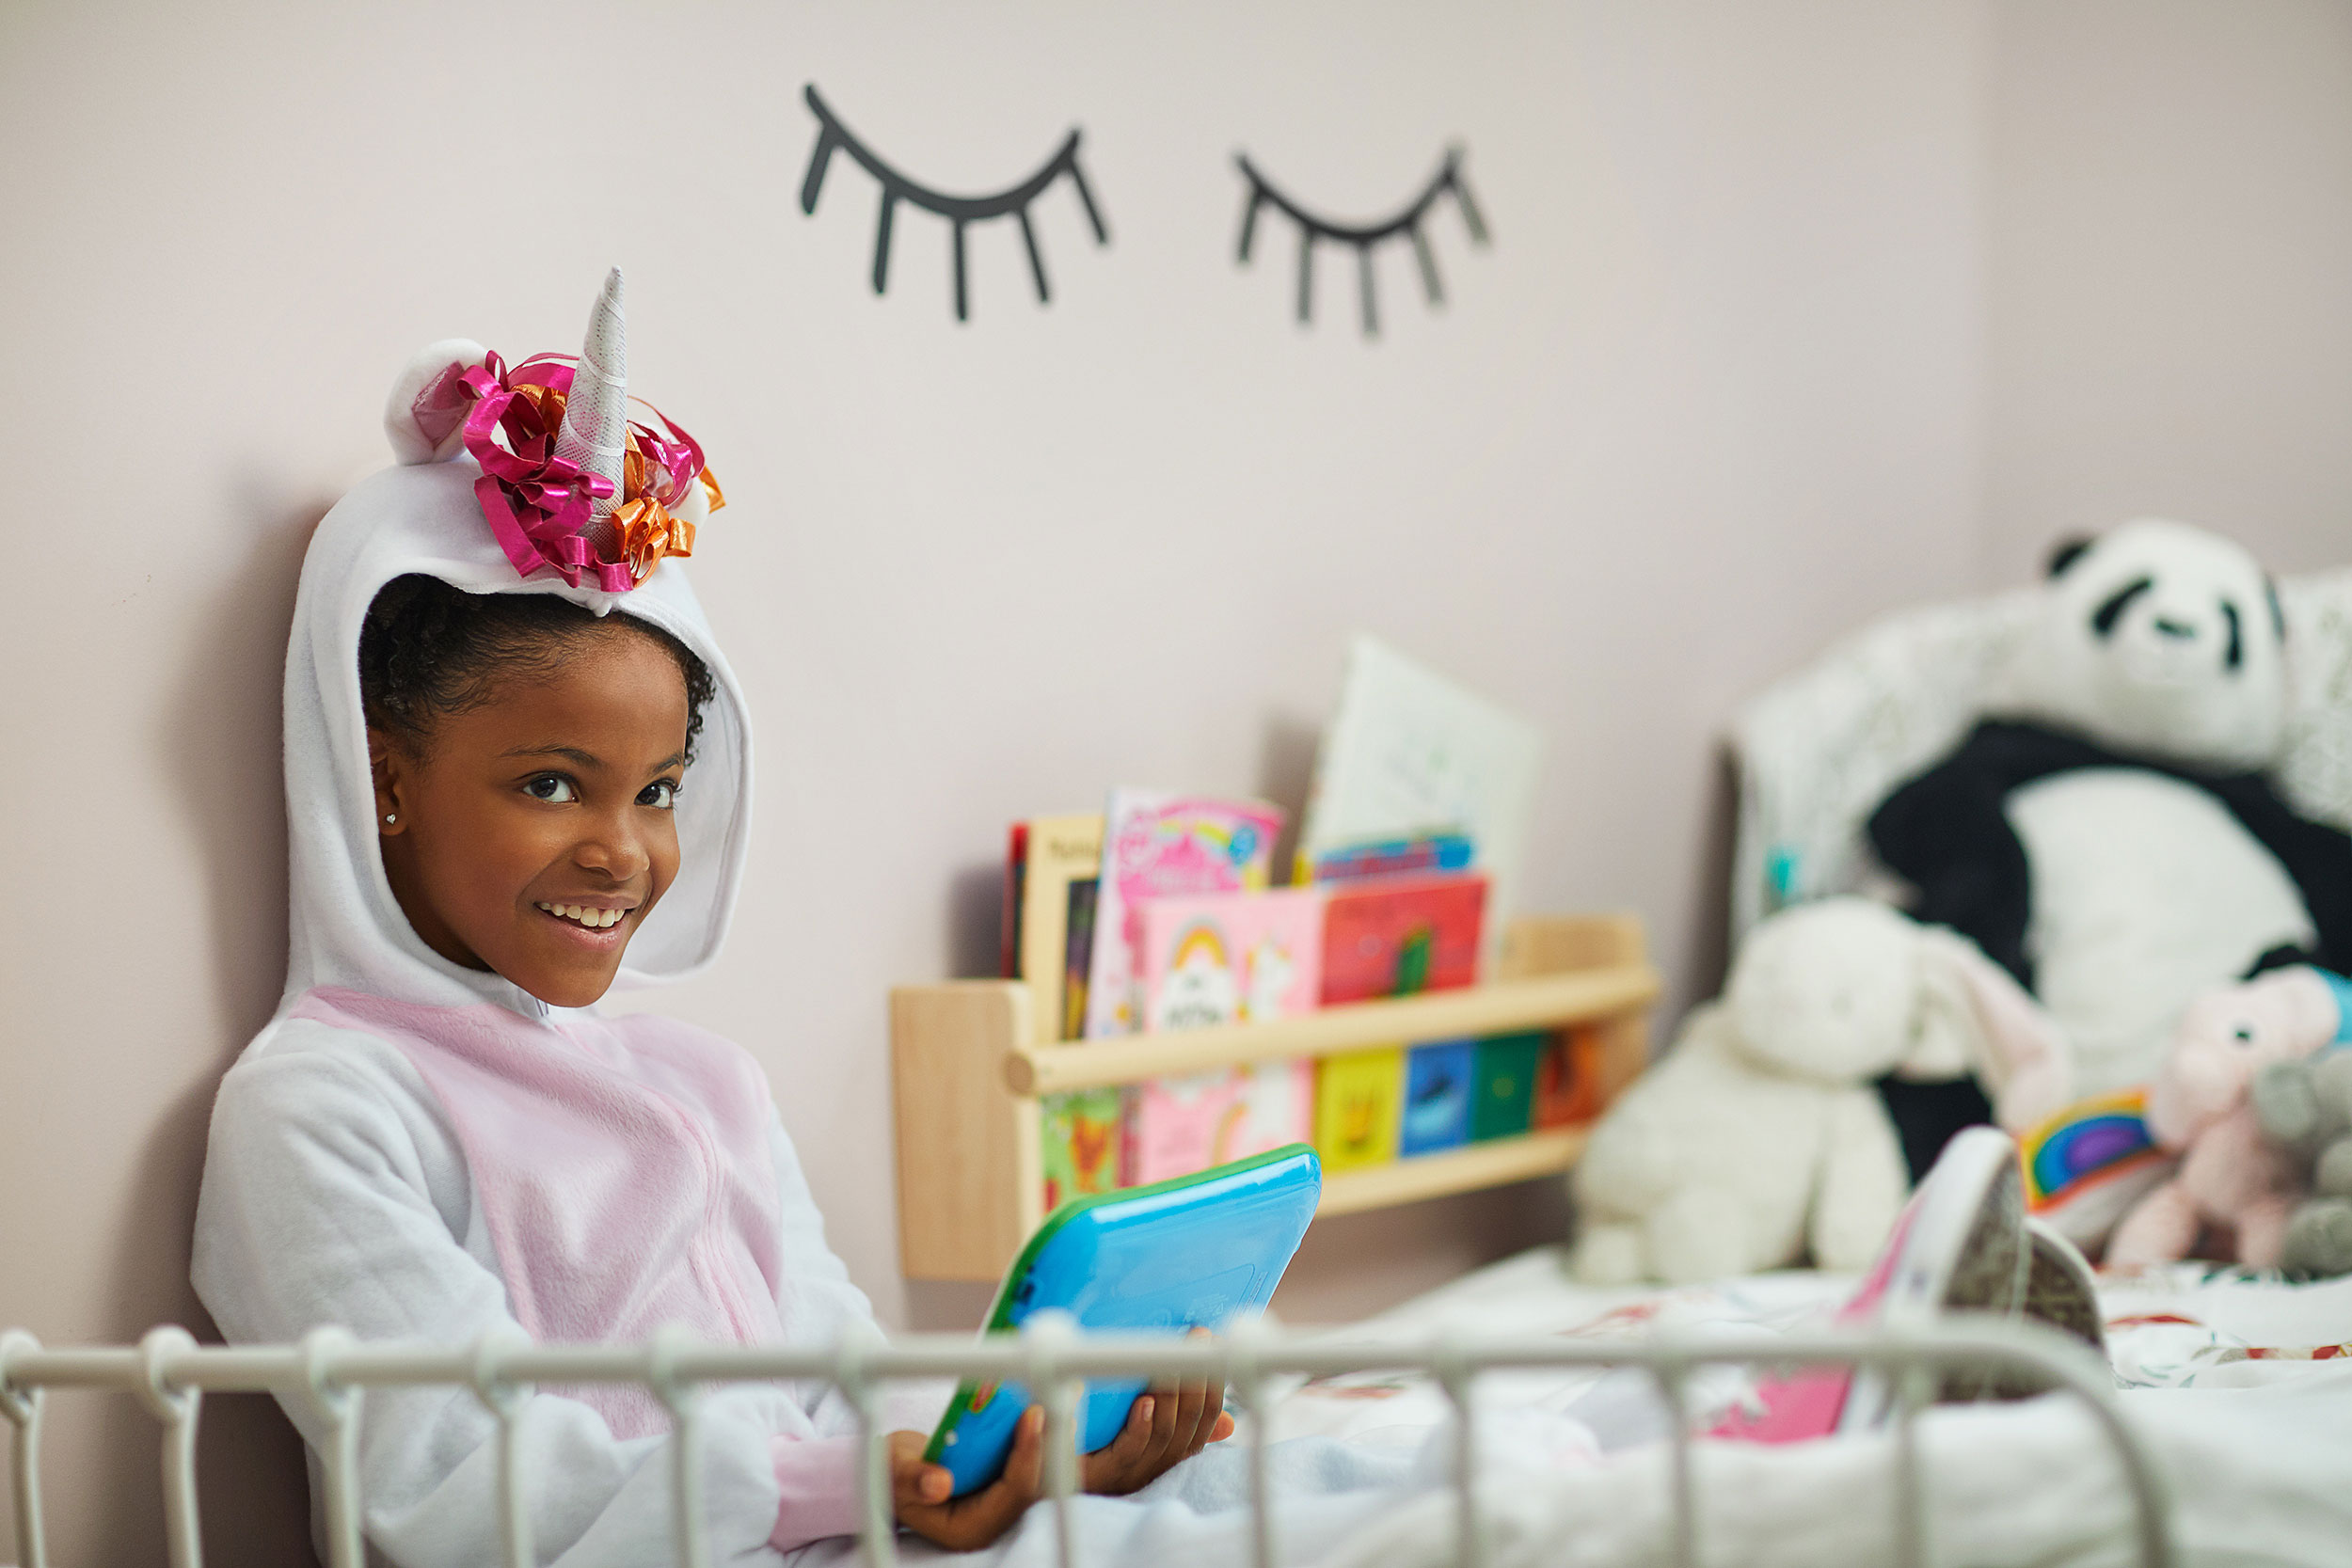 Natalia Weedy Calix a Black child dressed in a unicorn costume being pacified by an iPad